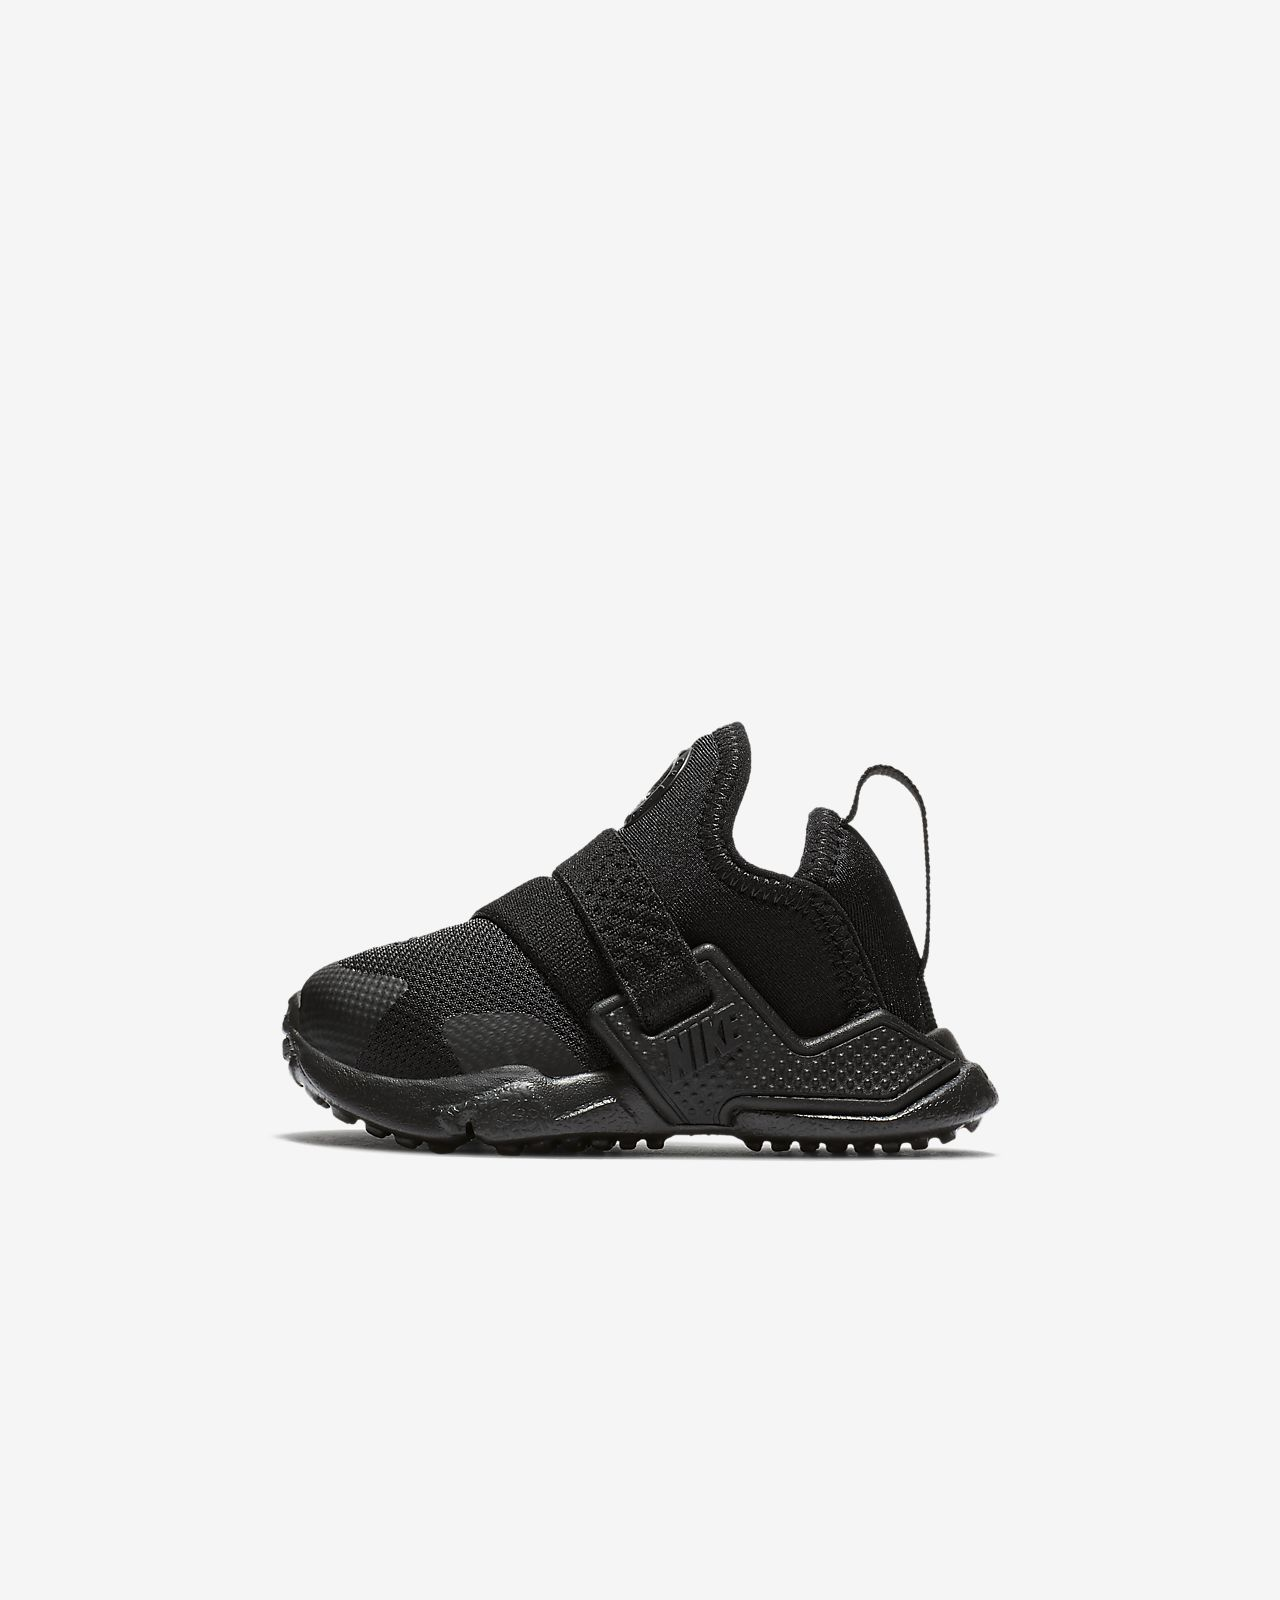 best sneakers 3773f 19d5d Nike Huarache Extreme